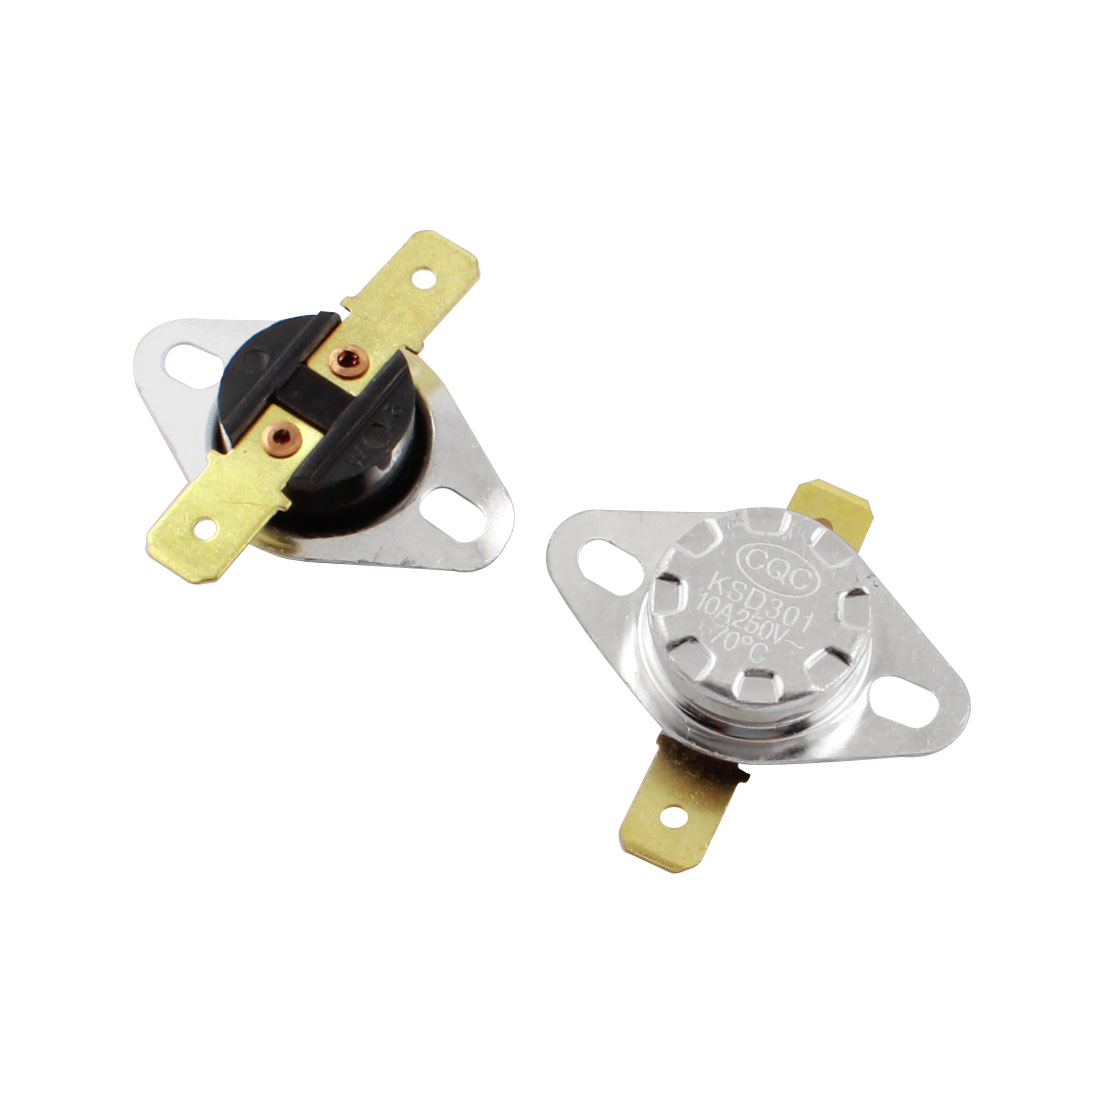 2 Pcs KSD301 AC250V 10A 70C NC Normally Closed 2 Terminal Temperature Control Switch Thermostat Sensor Protector